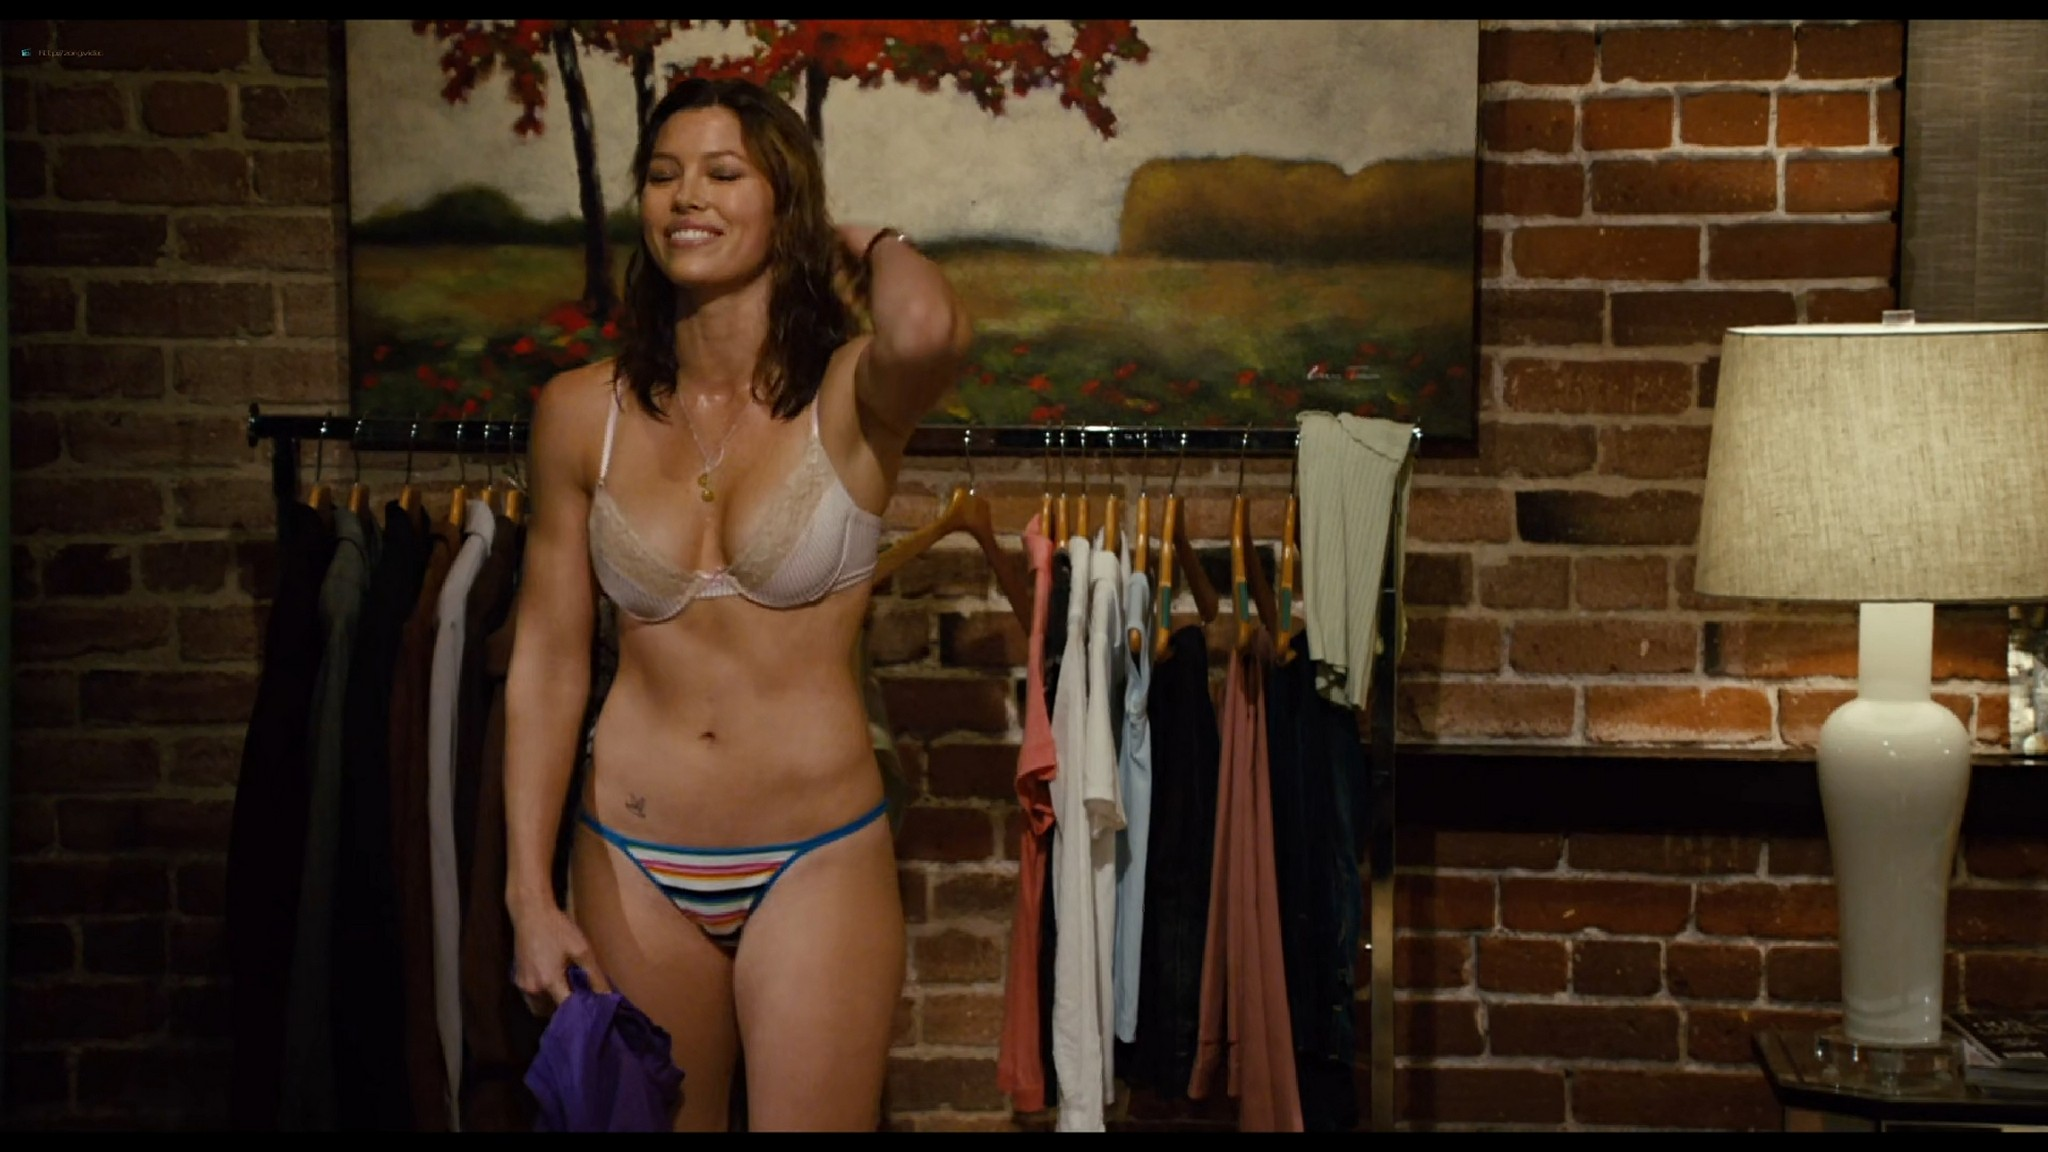 Jessica Biel hot sexy and Adam Sandler groping her boobs others sexy too - I Now Pronounce You Chuck & Larry (2007) HD 1080p BluRay (7)